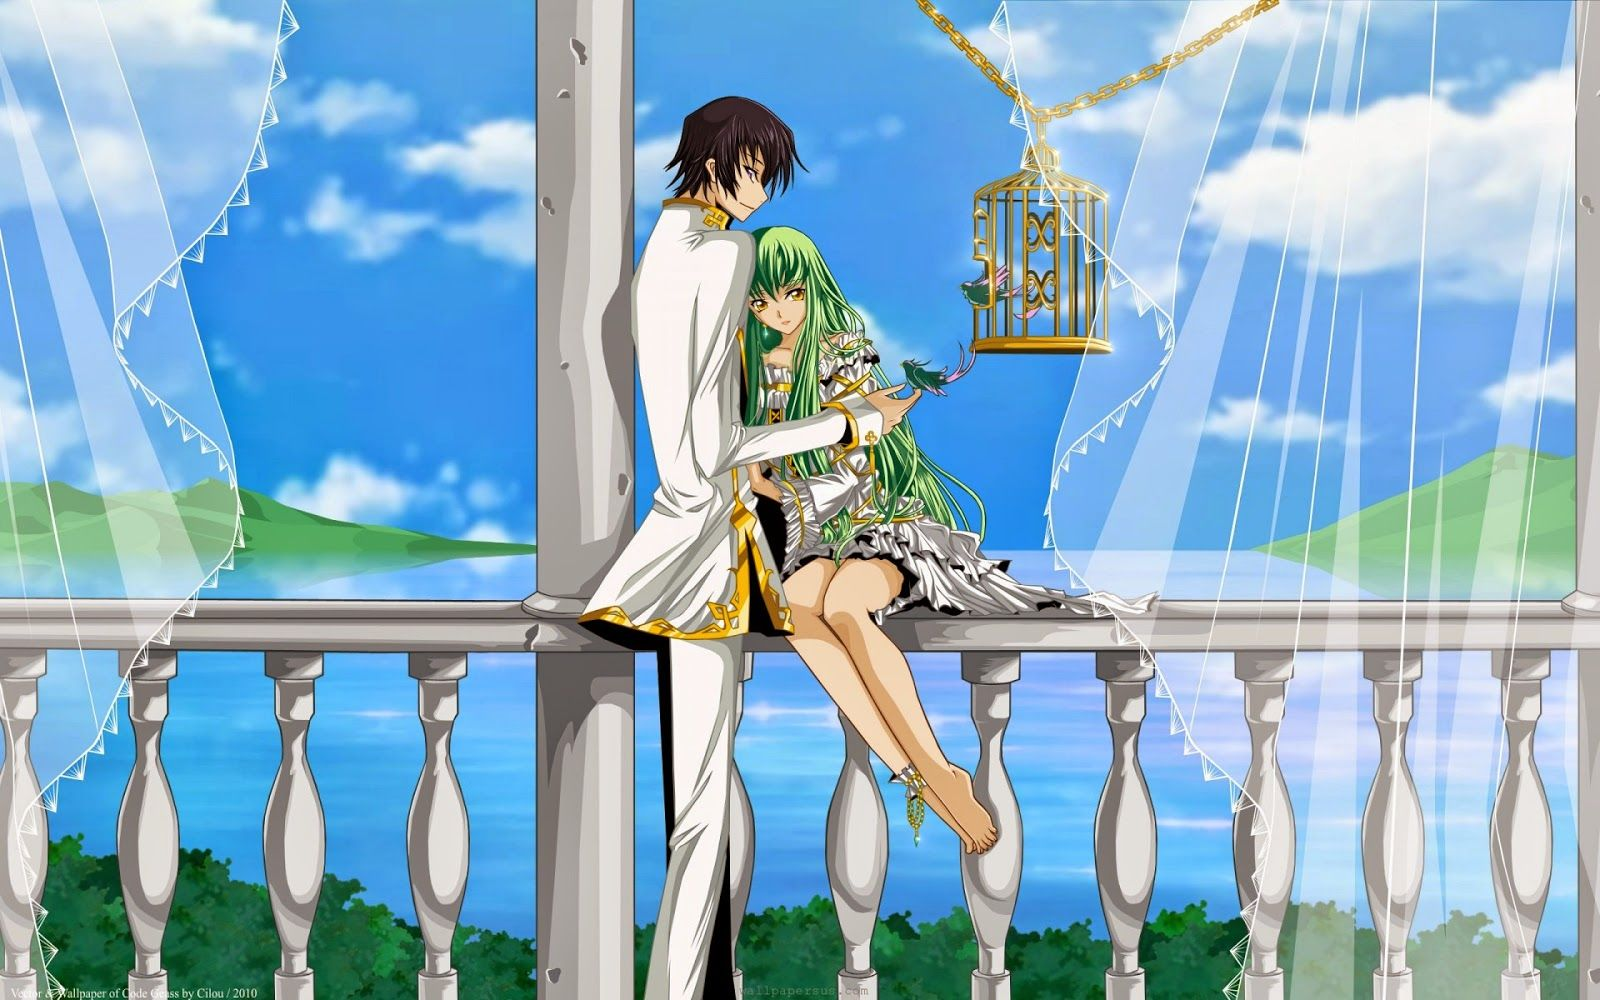 Anime Chibi Desktop WallpapersRomantic CouplesCute